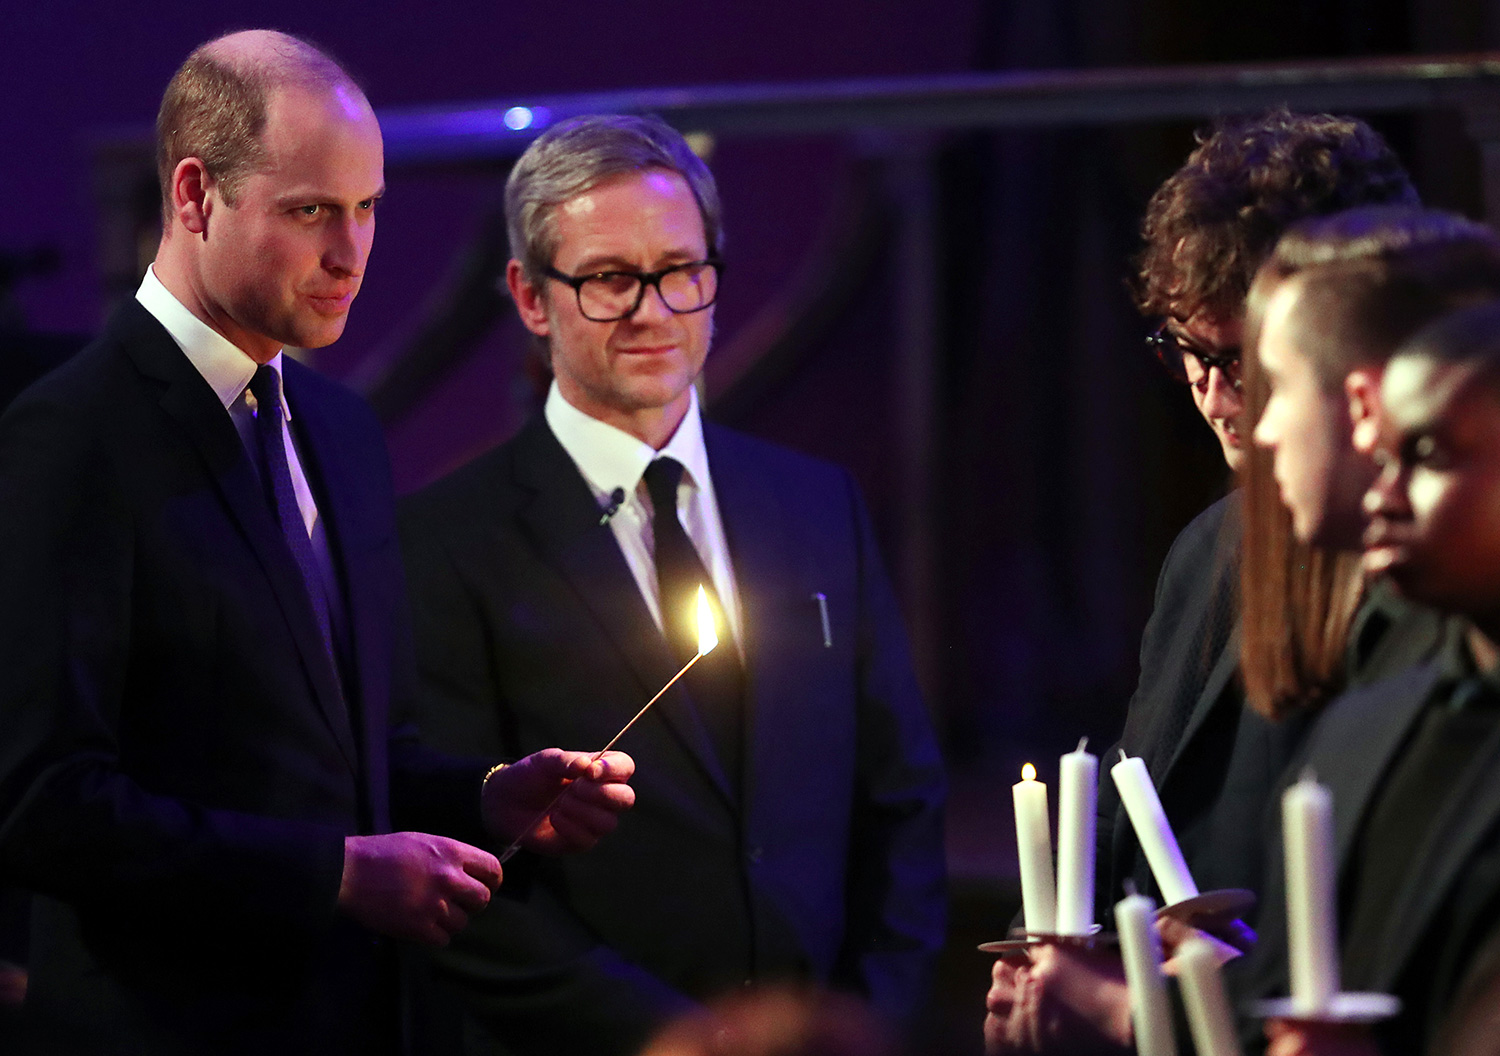 Prince William, Duke of Cambridge lights a candle during the UK Holocaust Memorial Day Commemorative Ceremony in Westminster on January 27, 2020 in London